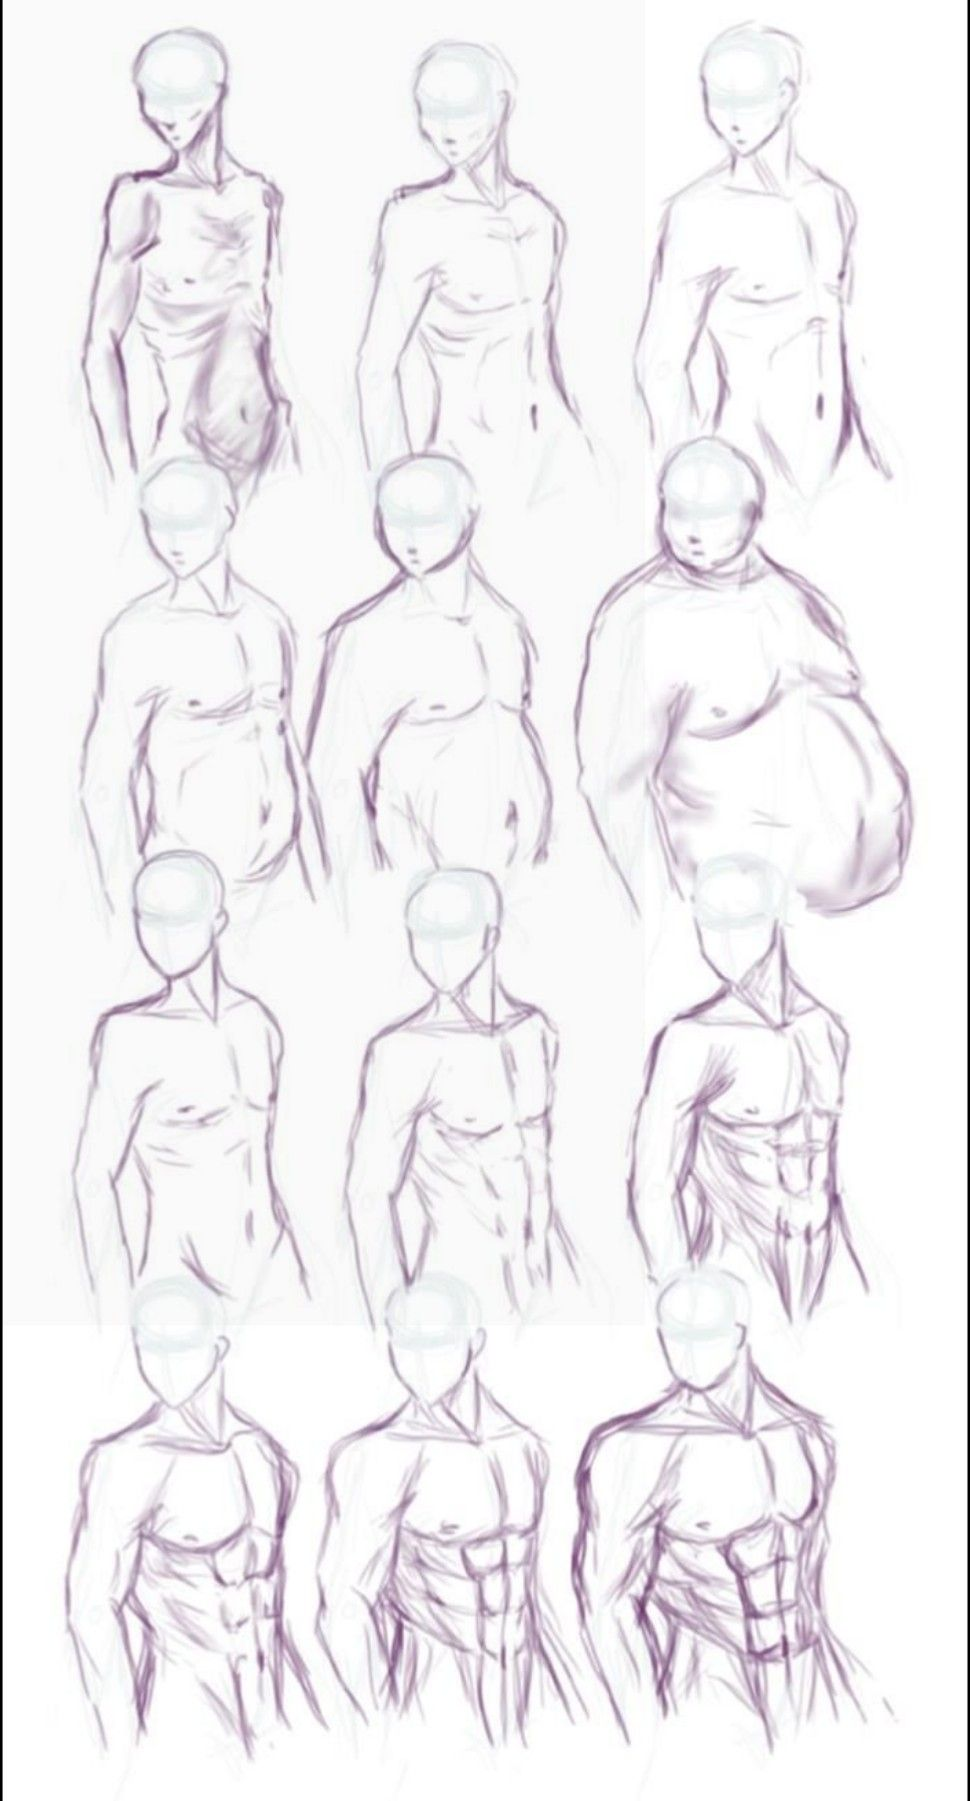 body type thick fat meager slim muscular anatomy reference form pose ...